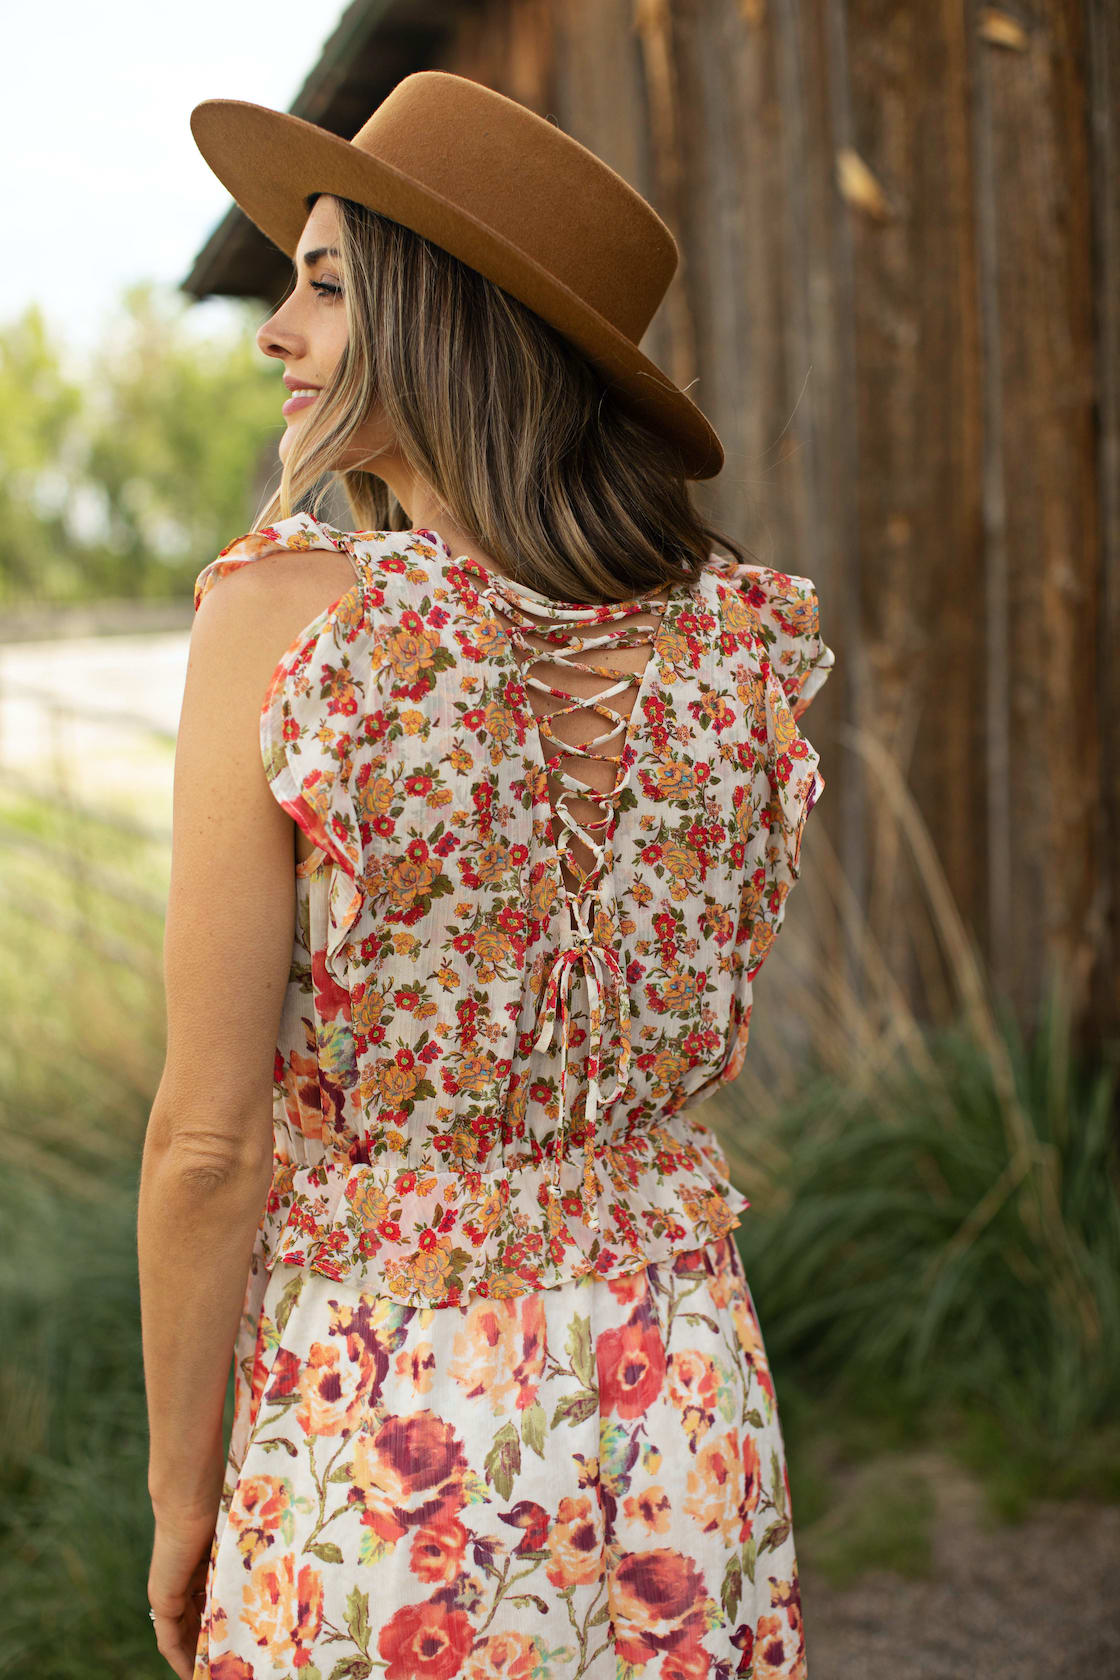 Mixed Floral With Crisscross Back - Ivory/Orange - Front